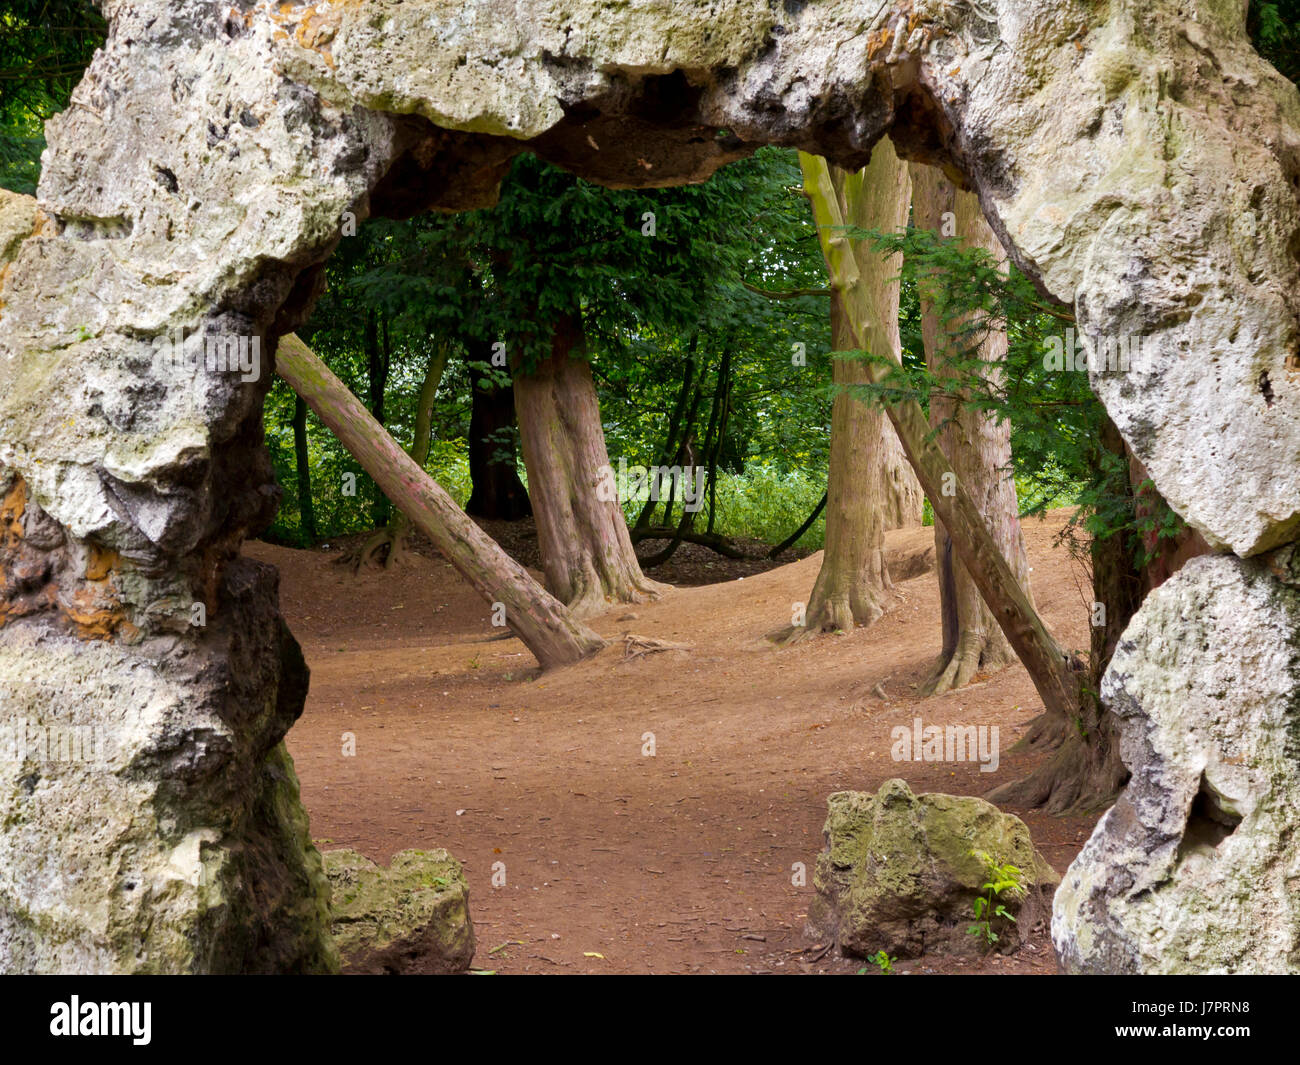 Rock grottoes in the grounds of Elvaston Castle Country Park near Derby England UK - Stock Image